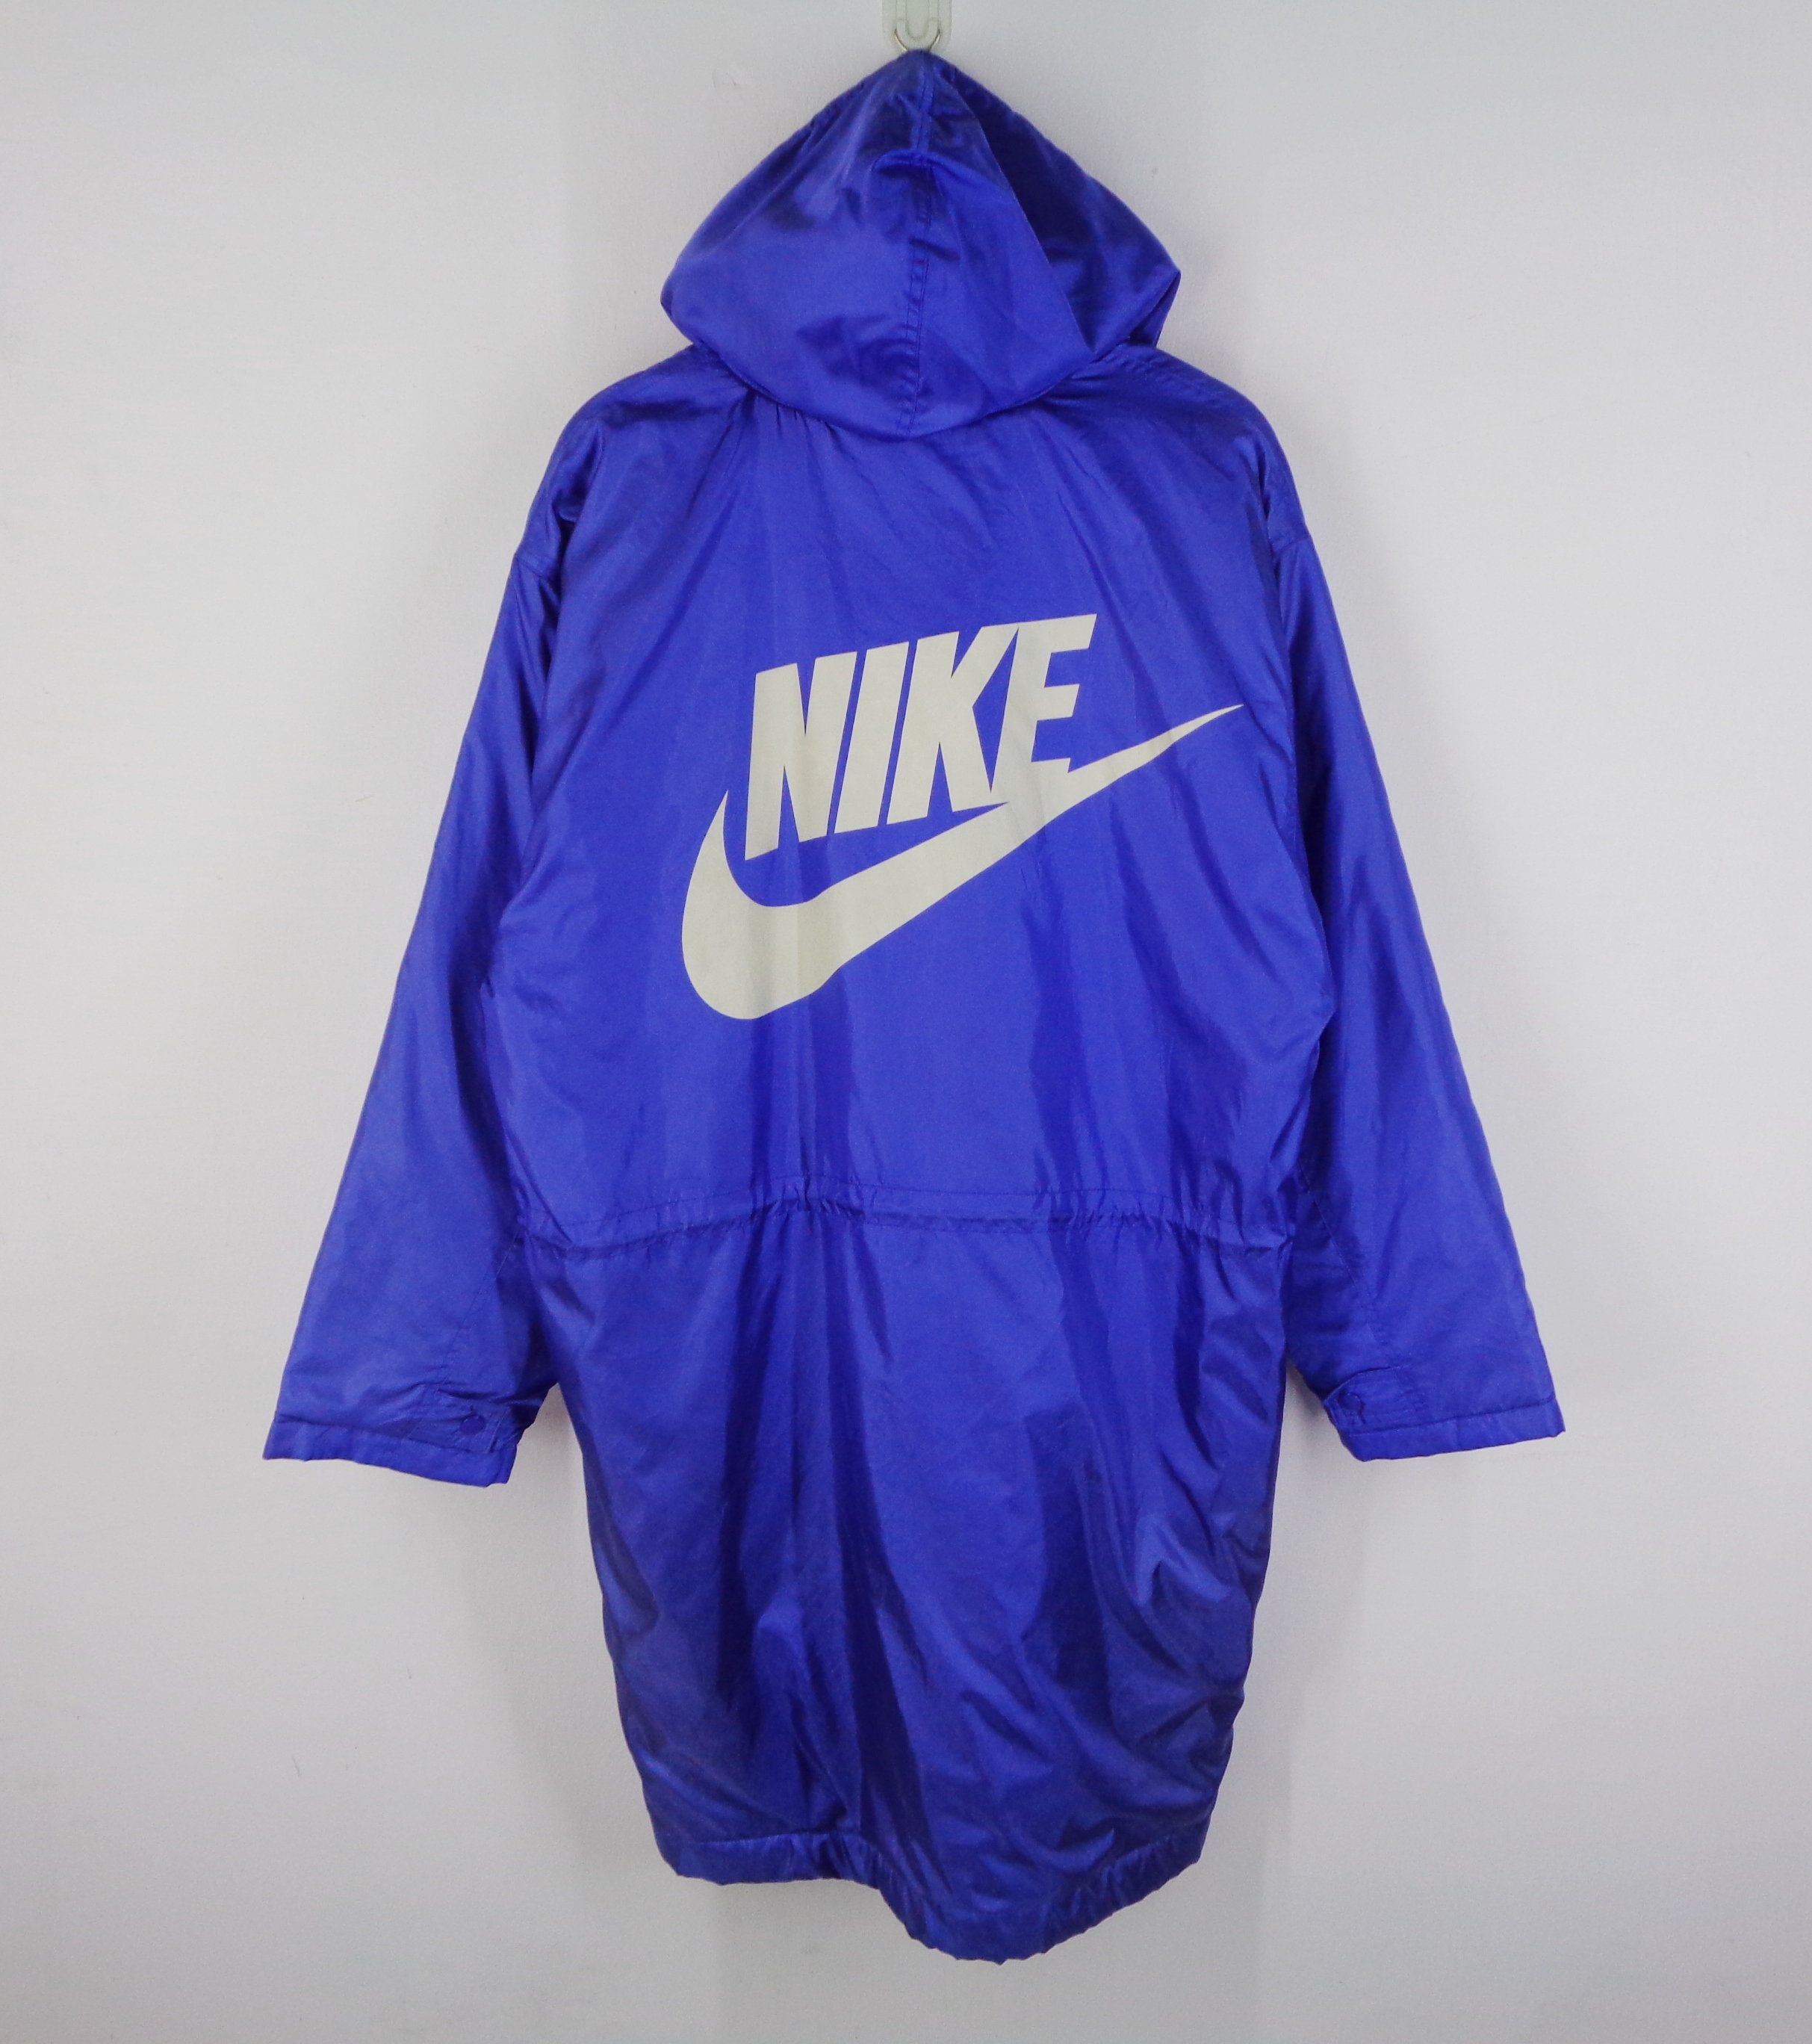 Nike Jacket Vintage Nike Windbreaker Vintage 90 S Nike Made In Japan Swoosh Big Logo Long Winter J Nike Windbreaker Vintage Nike Windbreaker Long Winter Jacket